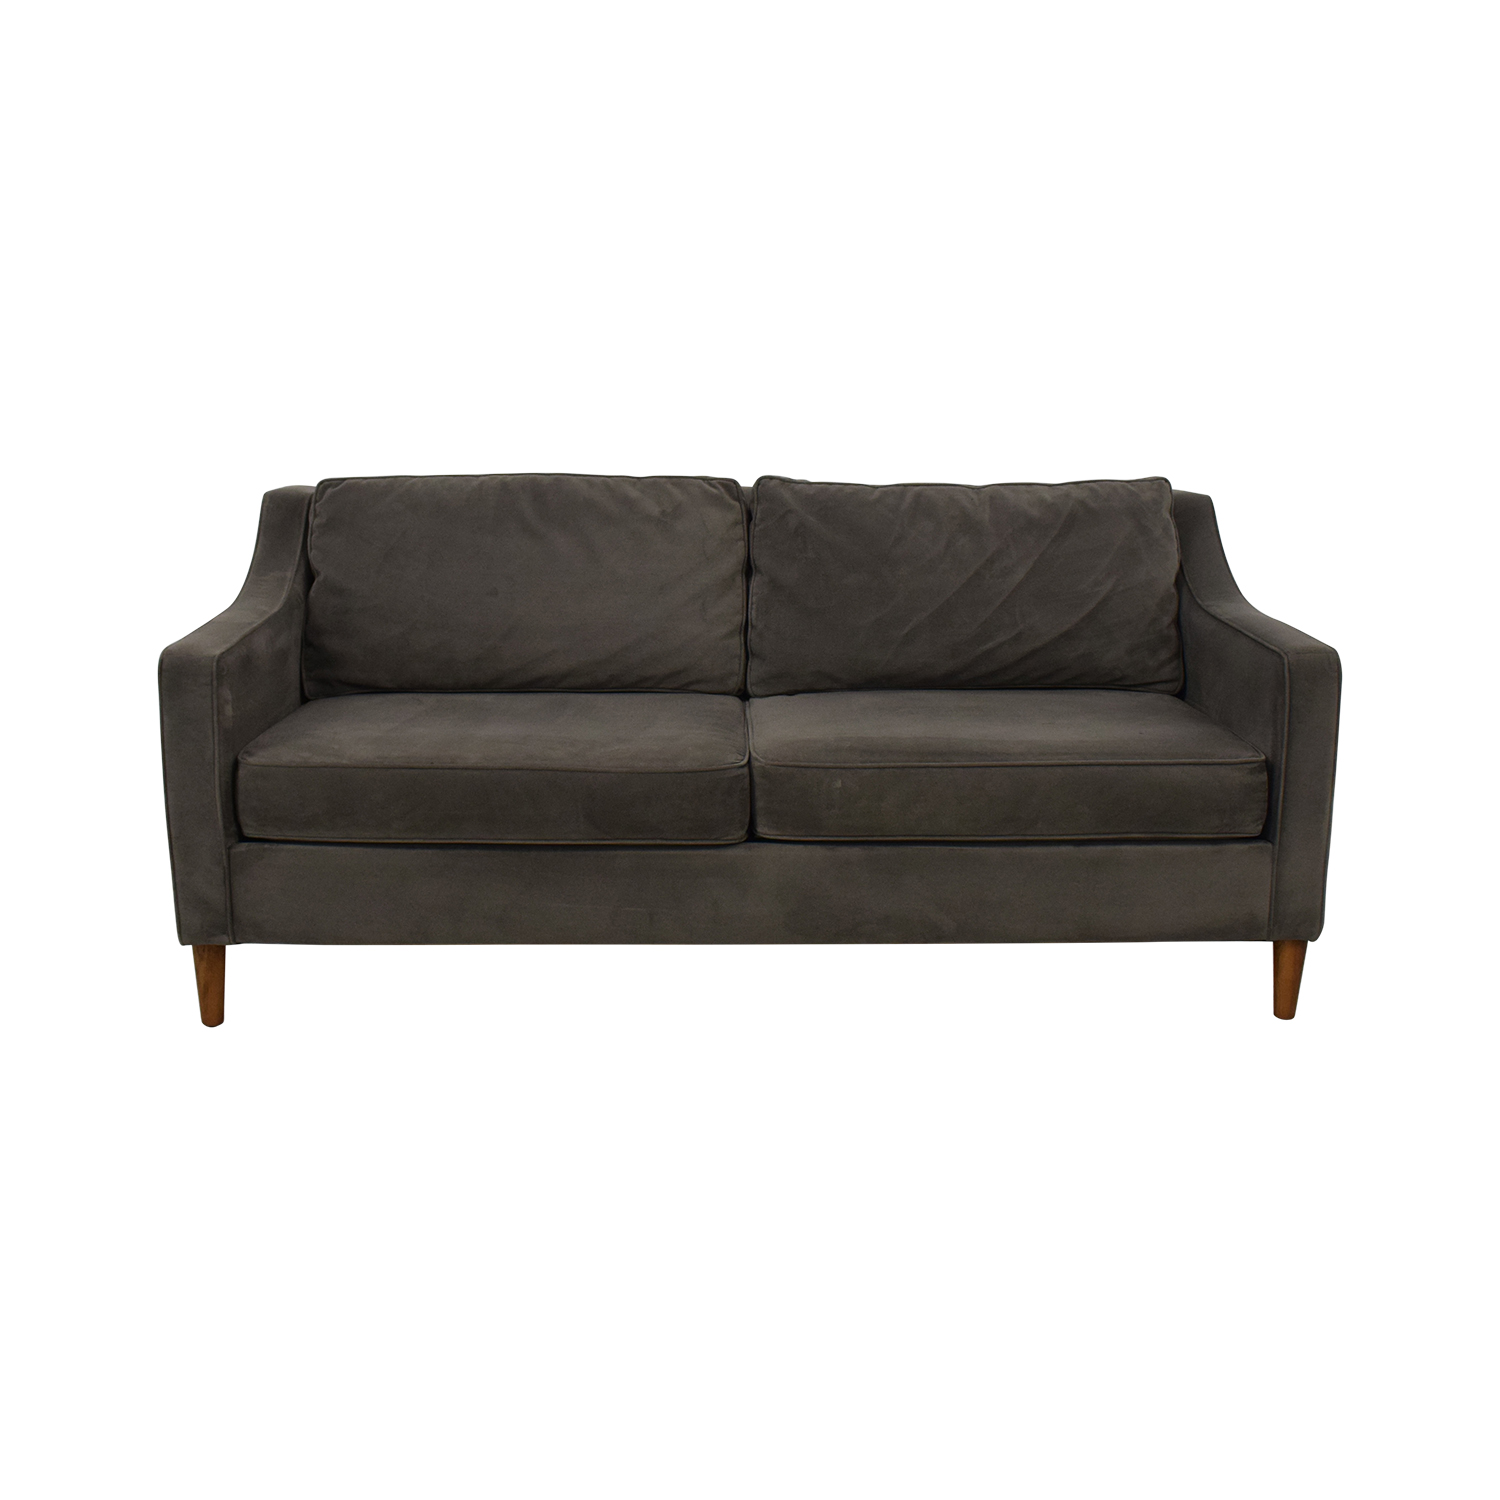 West Elm West Elm Paidge Velvet Sofa nyc